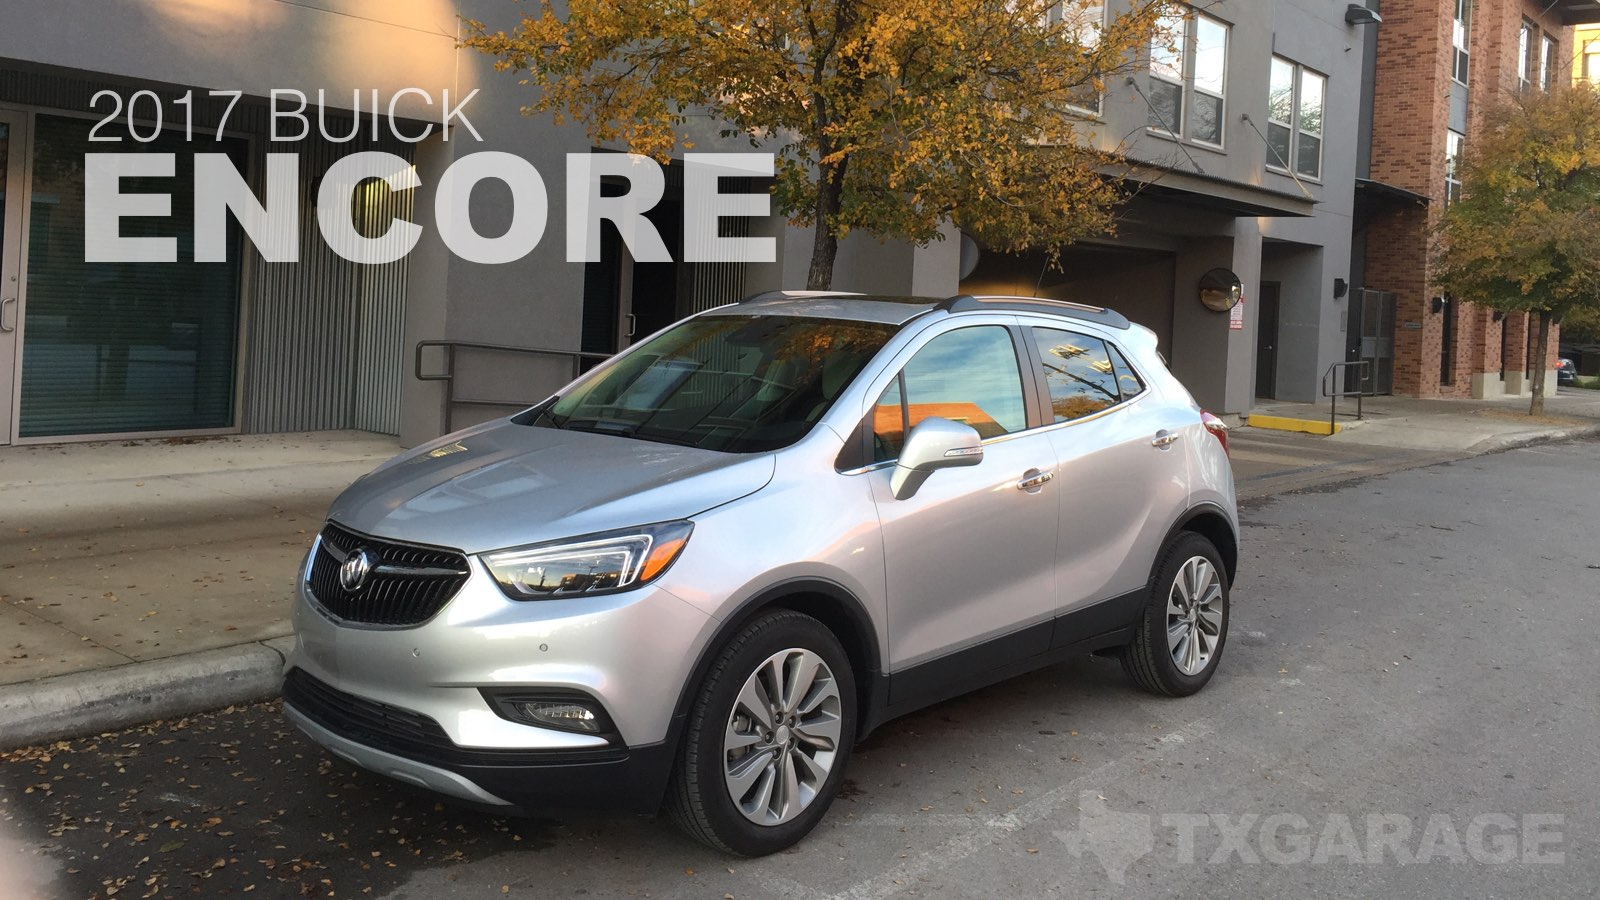 2017 Buick Encore – Size Matters…Until It Doesn't | txGarage